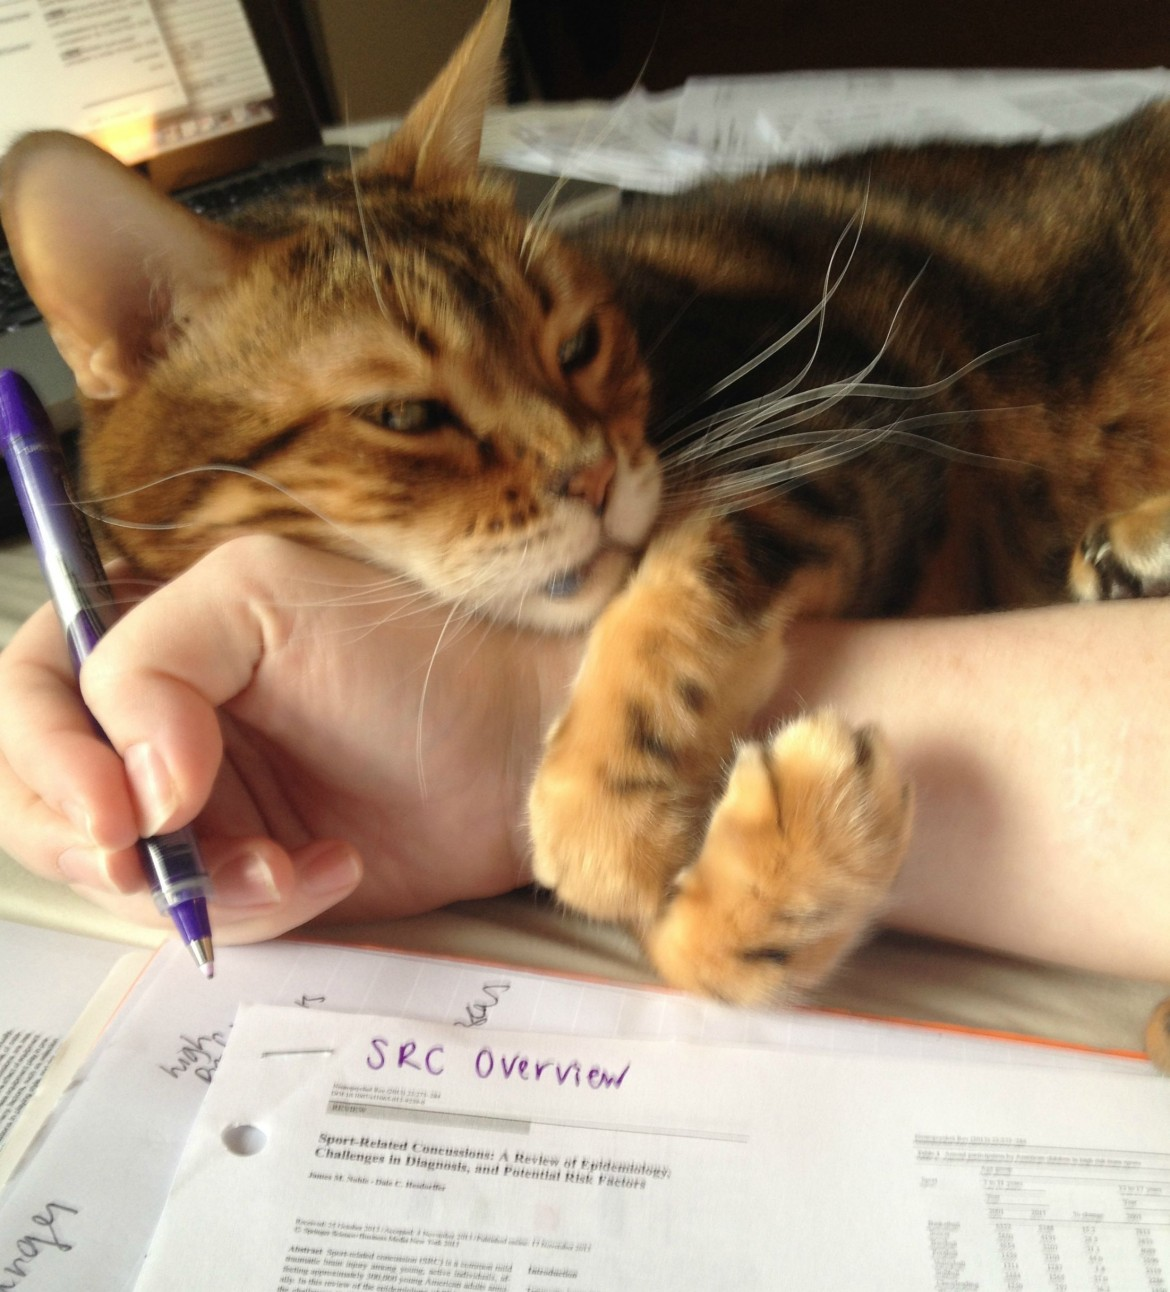 Here, let me help you with your work